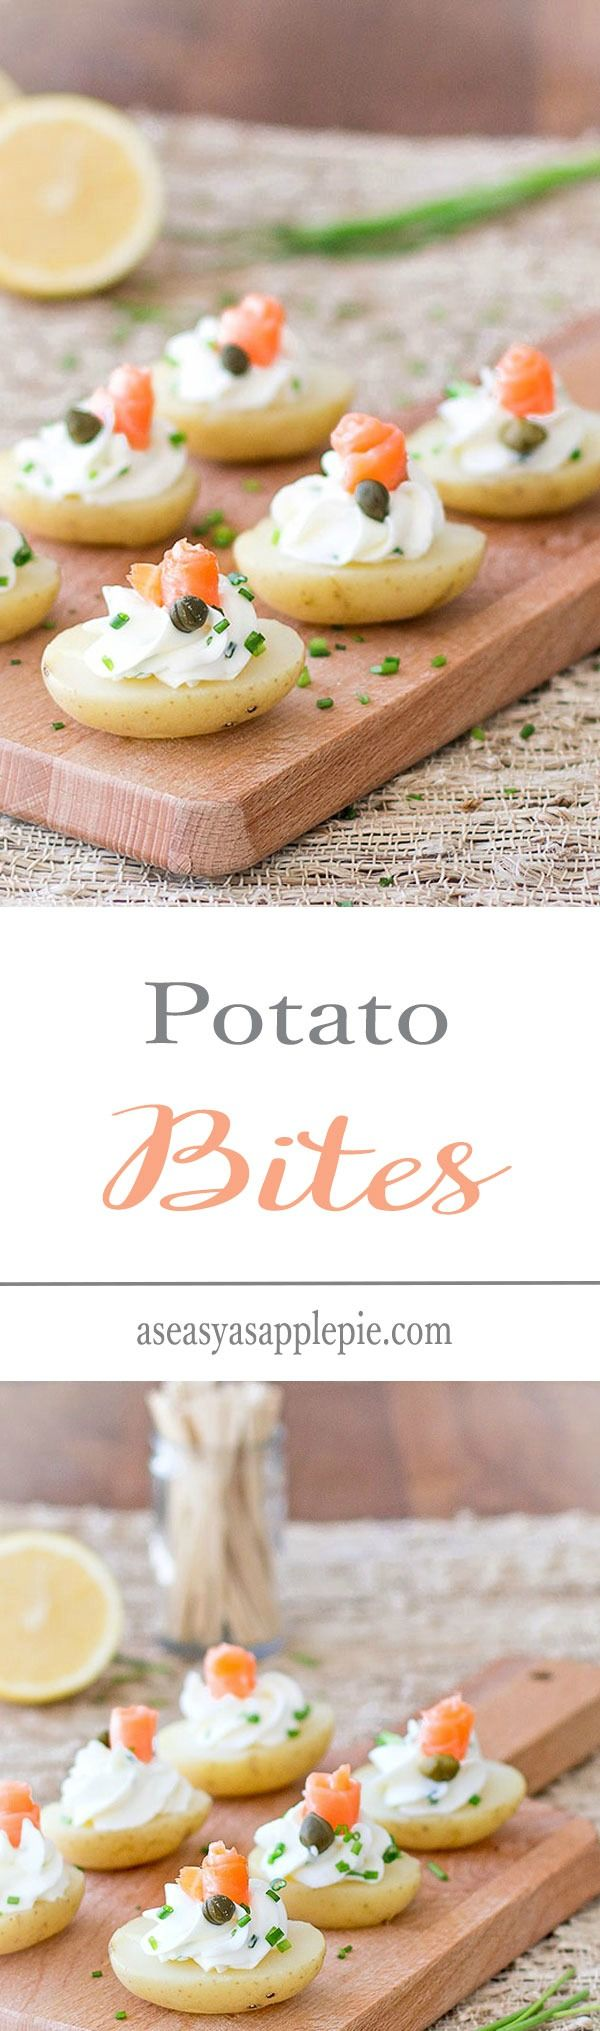 Potato bites with cream cheese and smoked salmon- an easy and delicious appetizer!